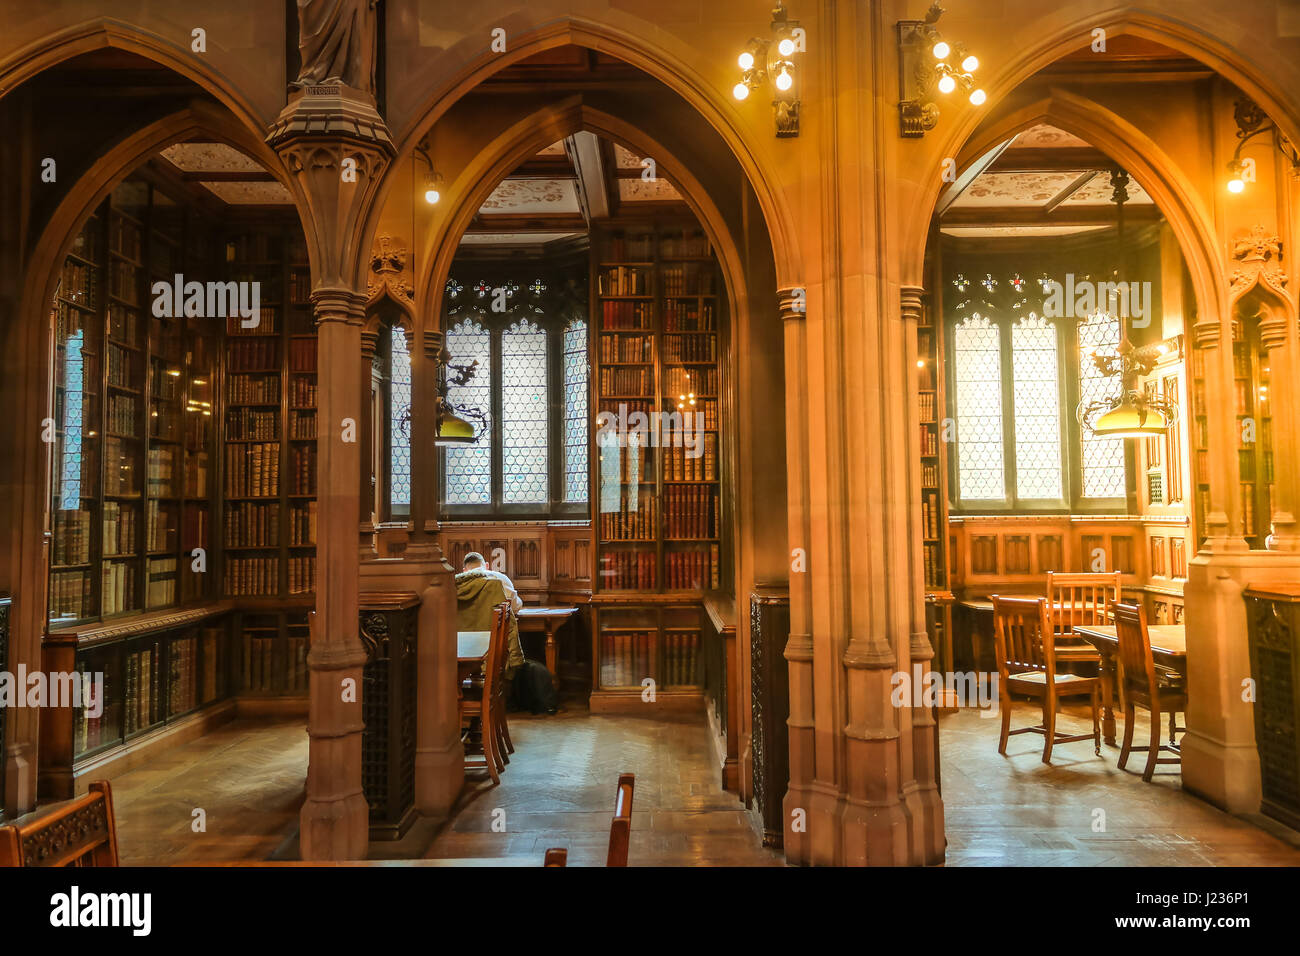 Reading Room Of The John Rylands Library In Manchester UK Historical Interiors